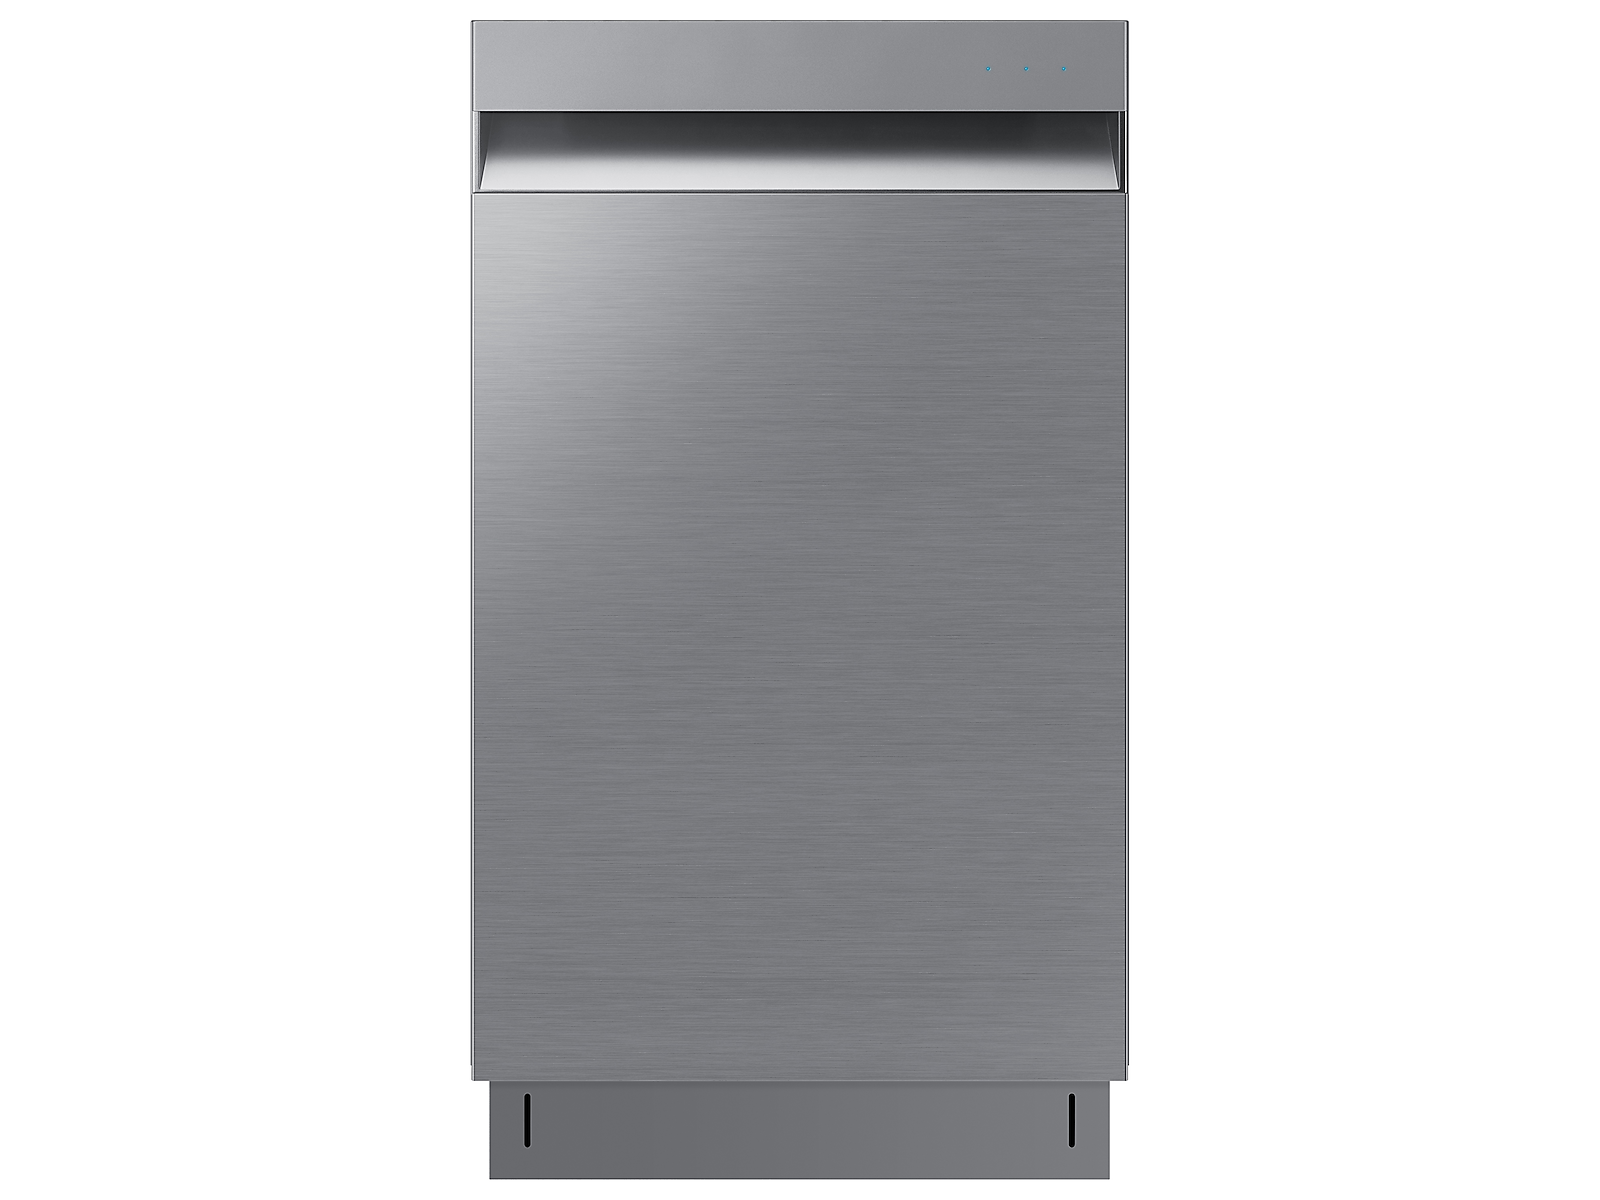 Samsung coupon: Samsung Whisper Quiet 46 dBA Dishwasher in Stainless Steel(DW50T6060US/AA)